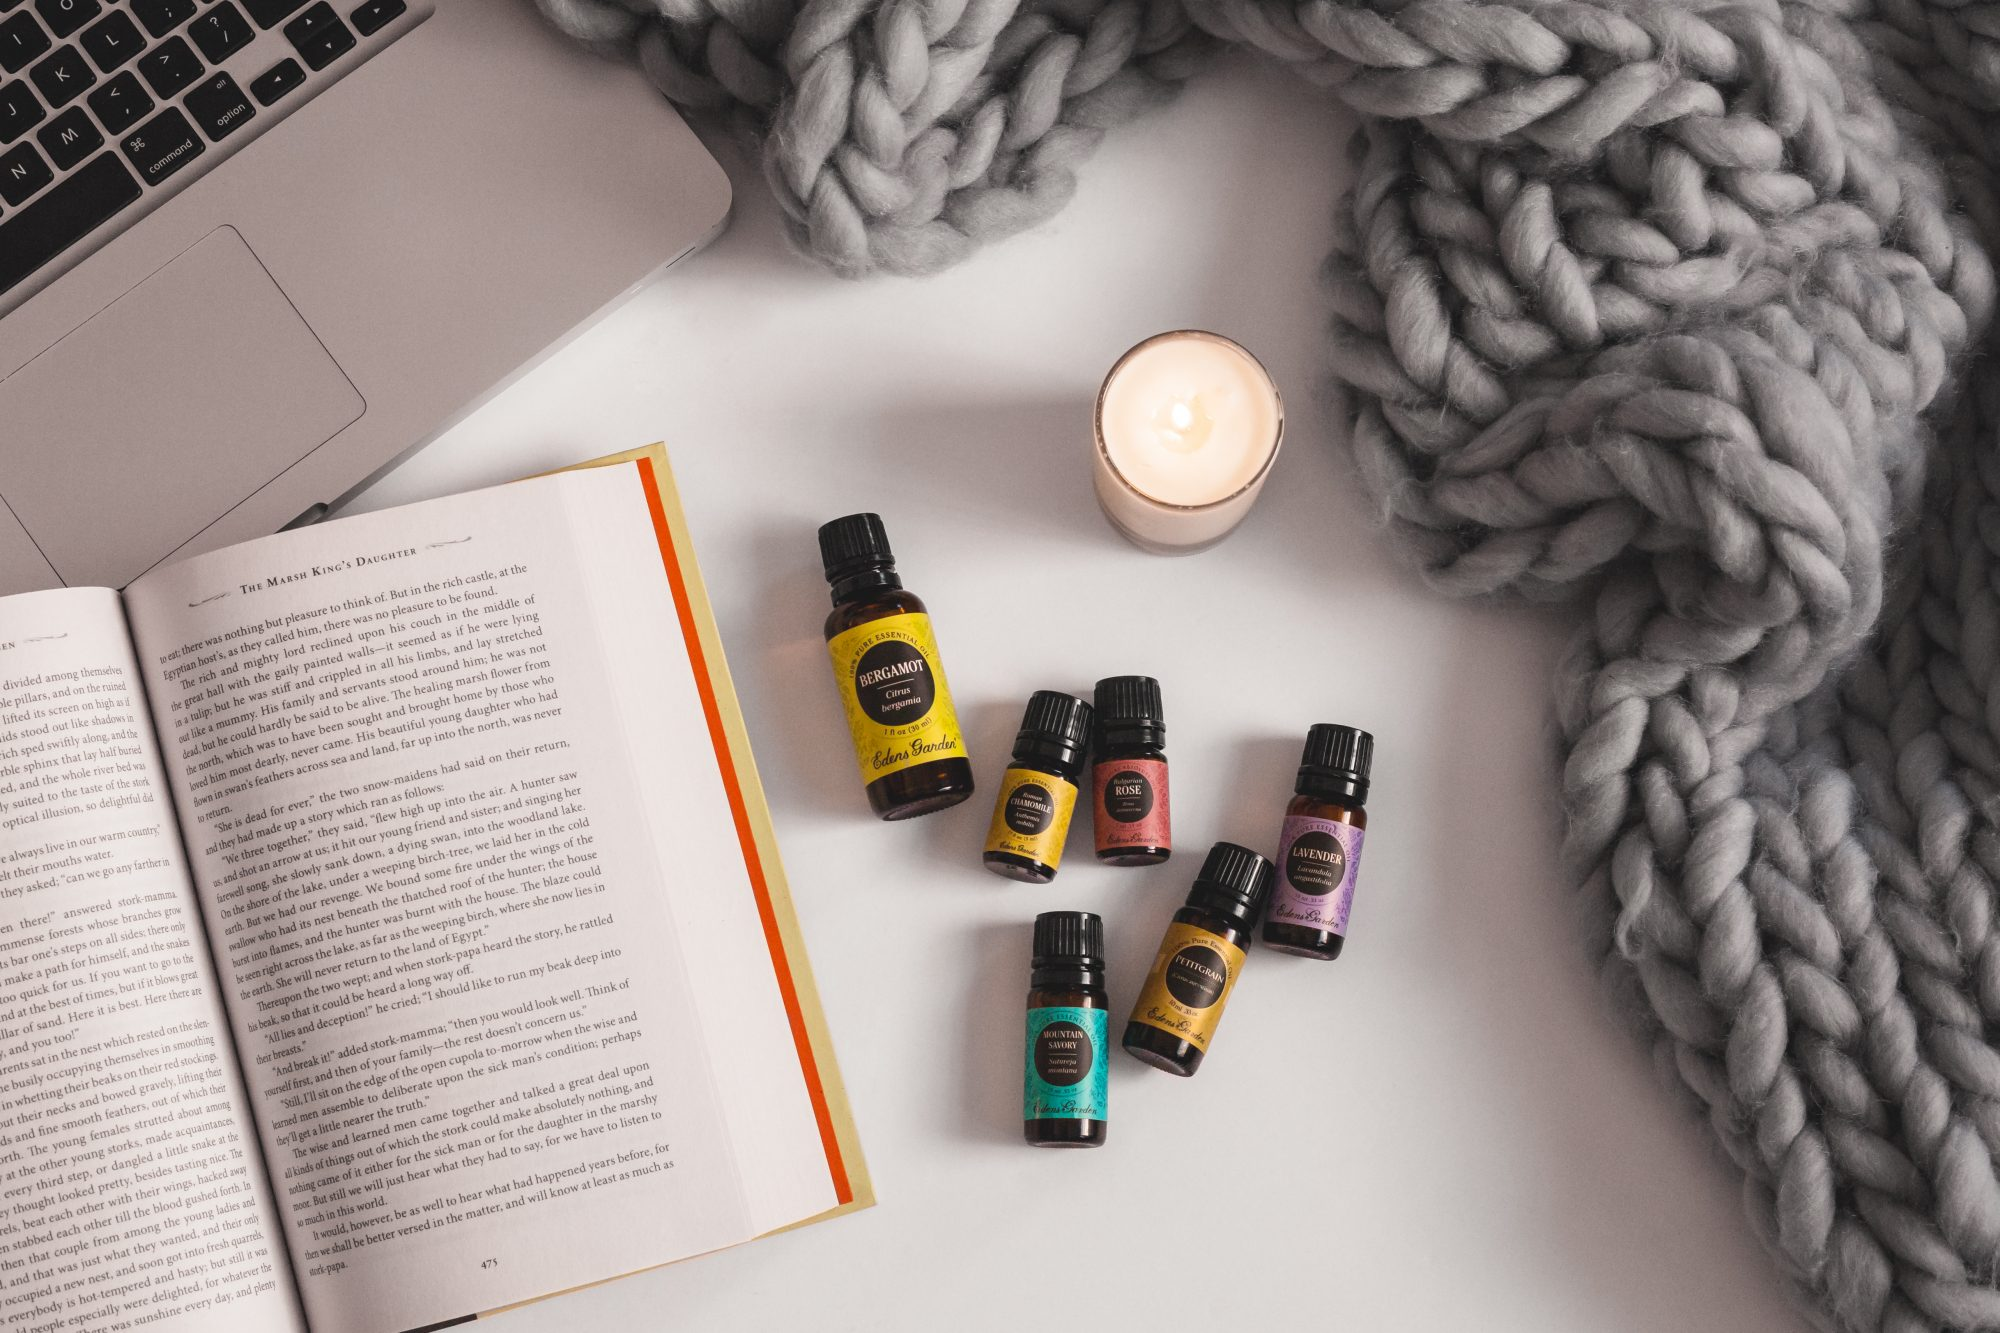 Essential oils like Lavender, Bergamot and Petitgrain and affordable and natural alternatives for treating stress, anger and depression. - www.theballeronabudget.com